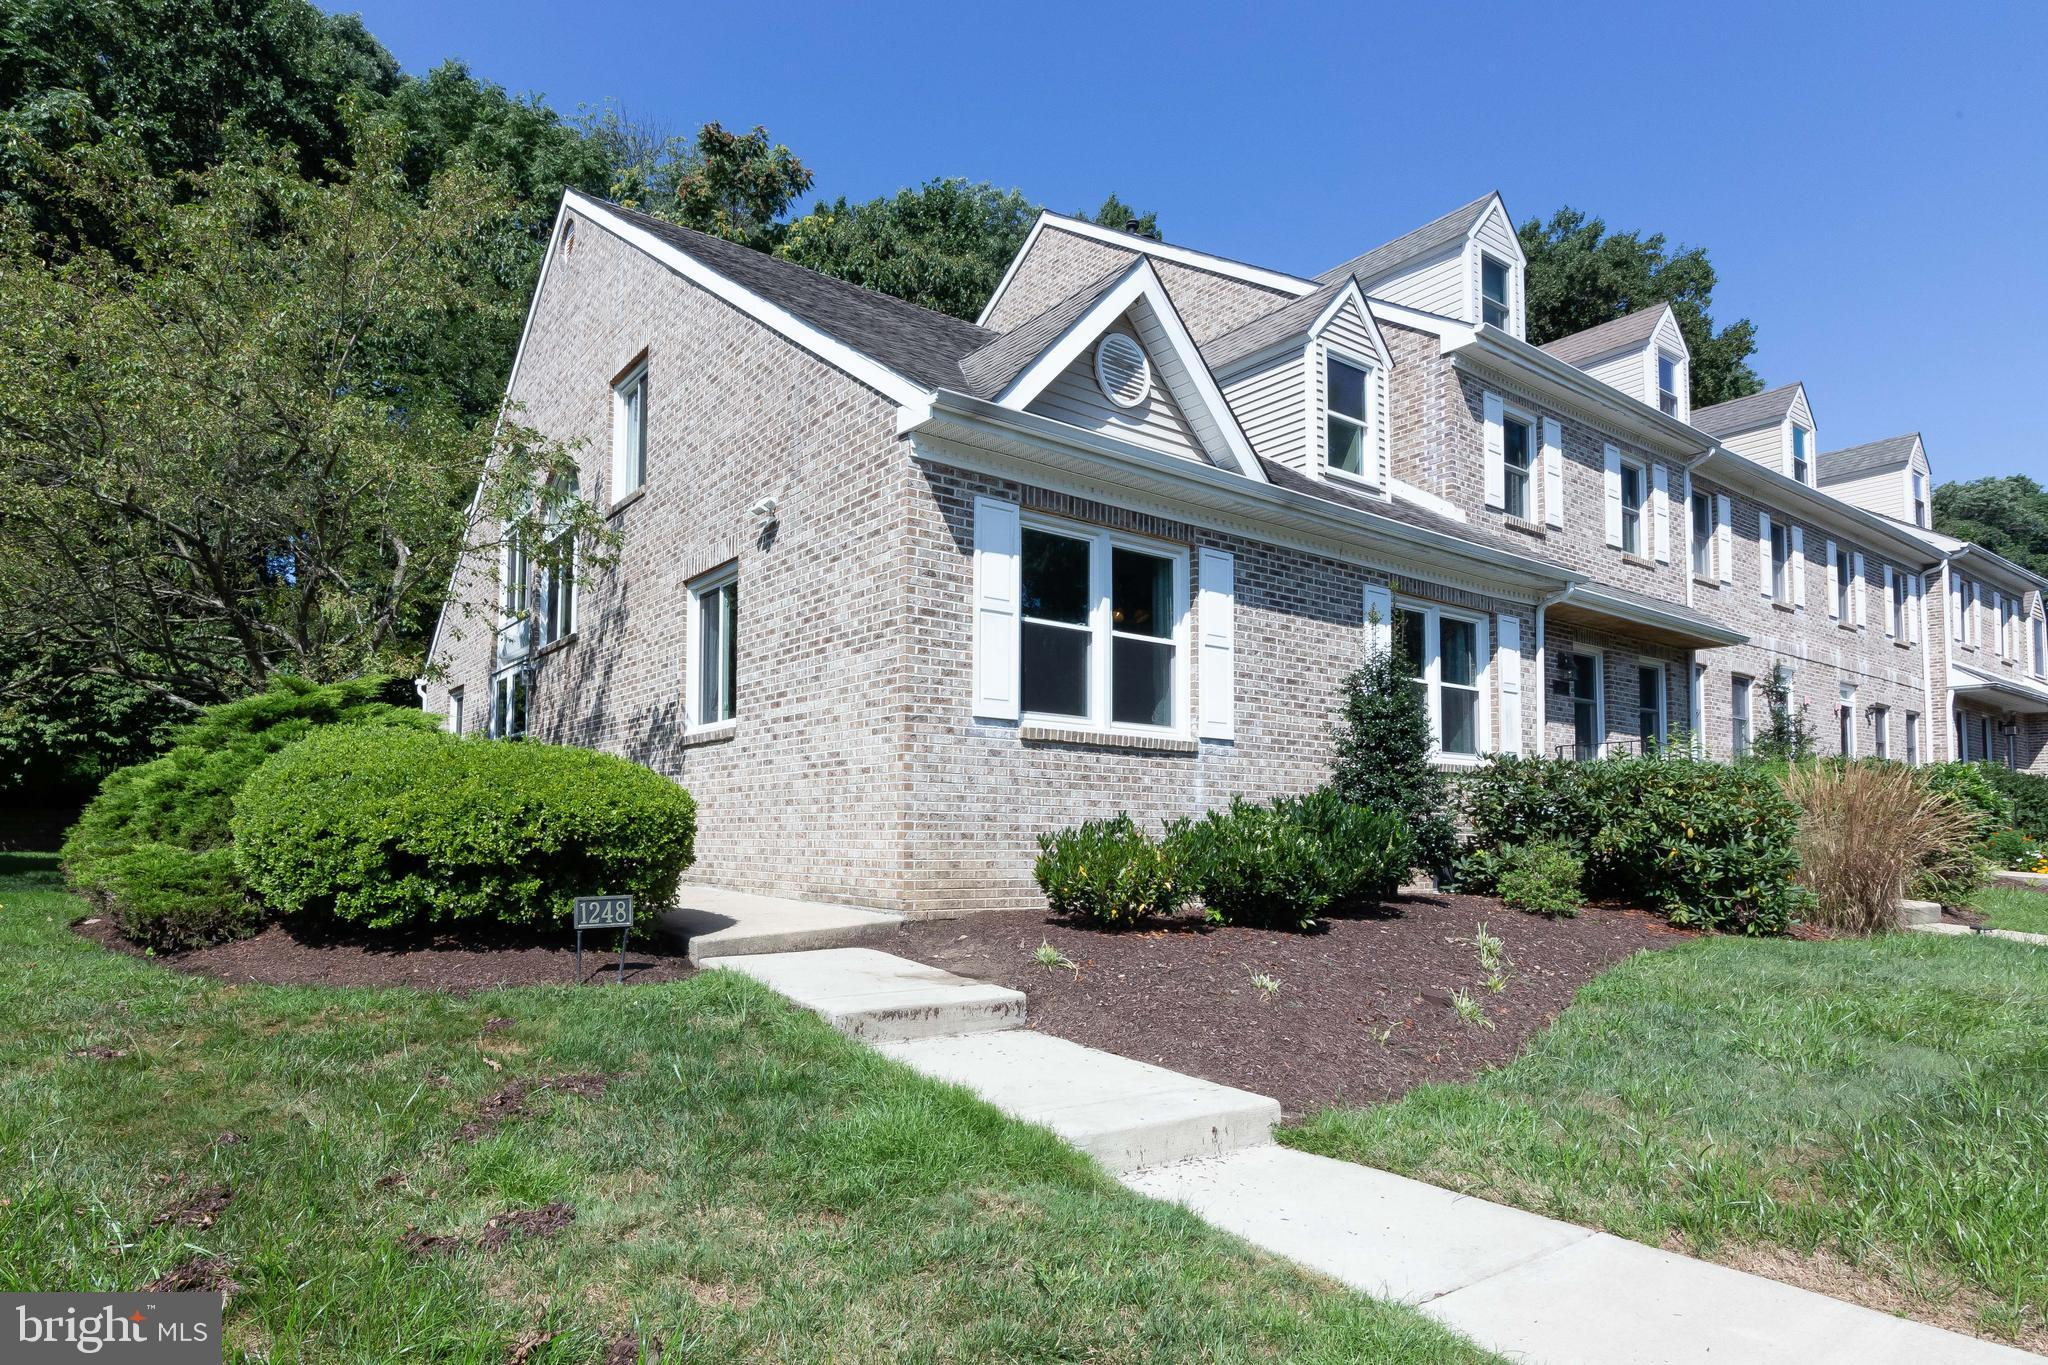 1248 COUNTRY CLUB DRIVE, SPRINGFIELD, PA 19064